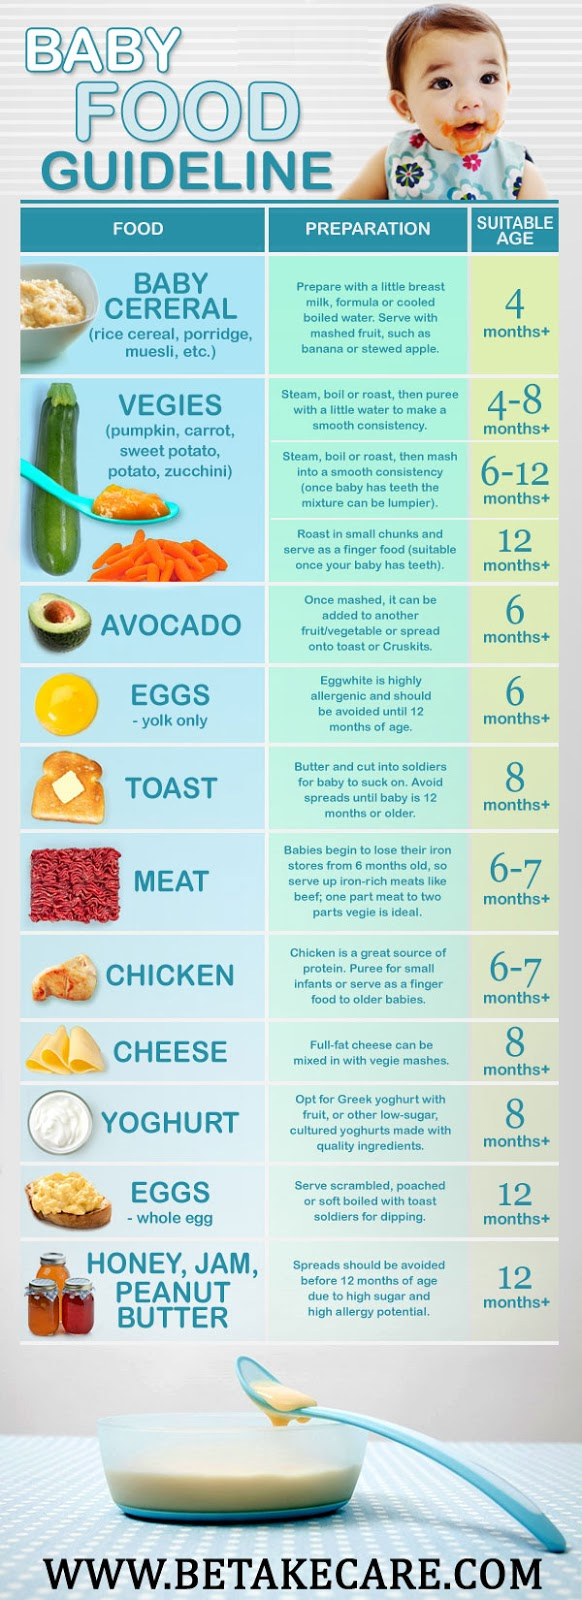 Baby Food Guidelines